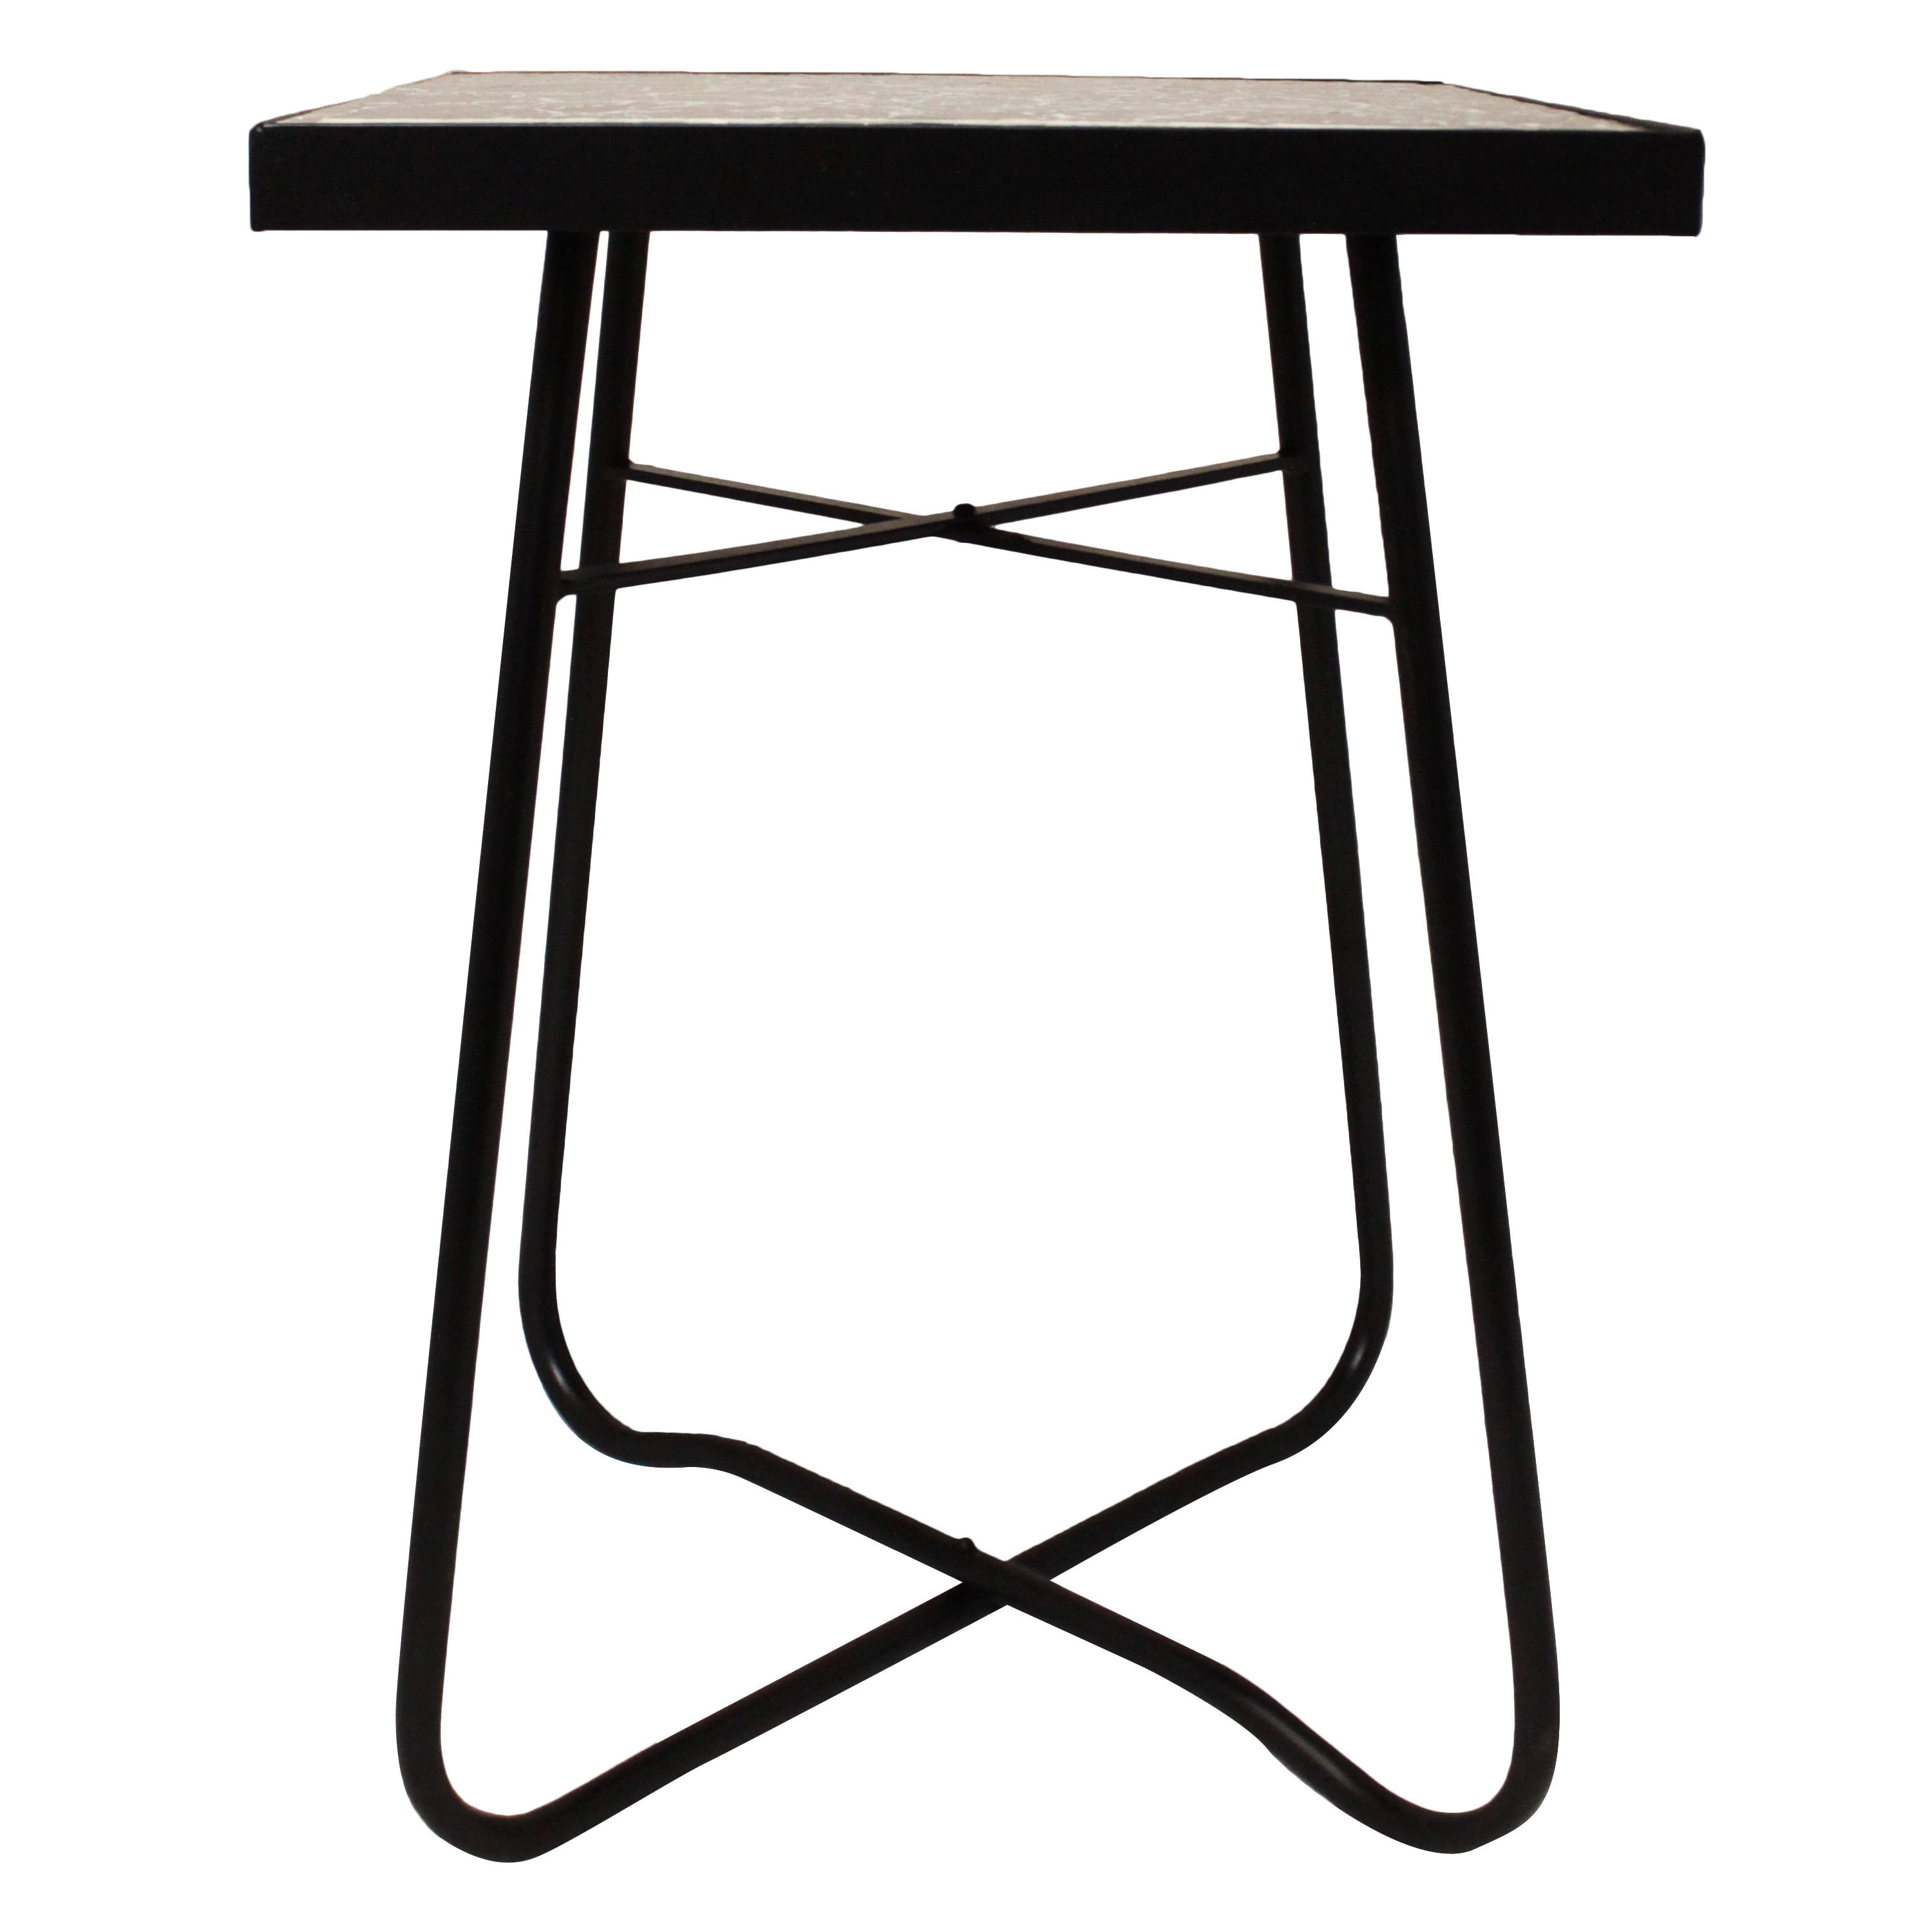 black mosaic square patio side accent table free shipping white today luxury garden furniture silver grey bedside lamps screw wooden legs rattan outdoor beach small teak drum